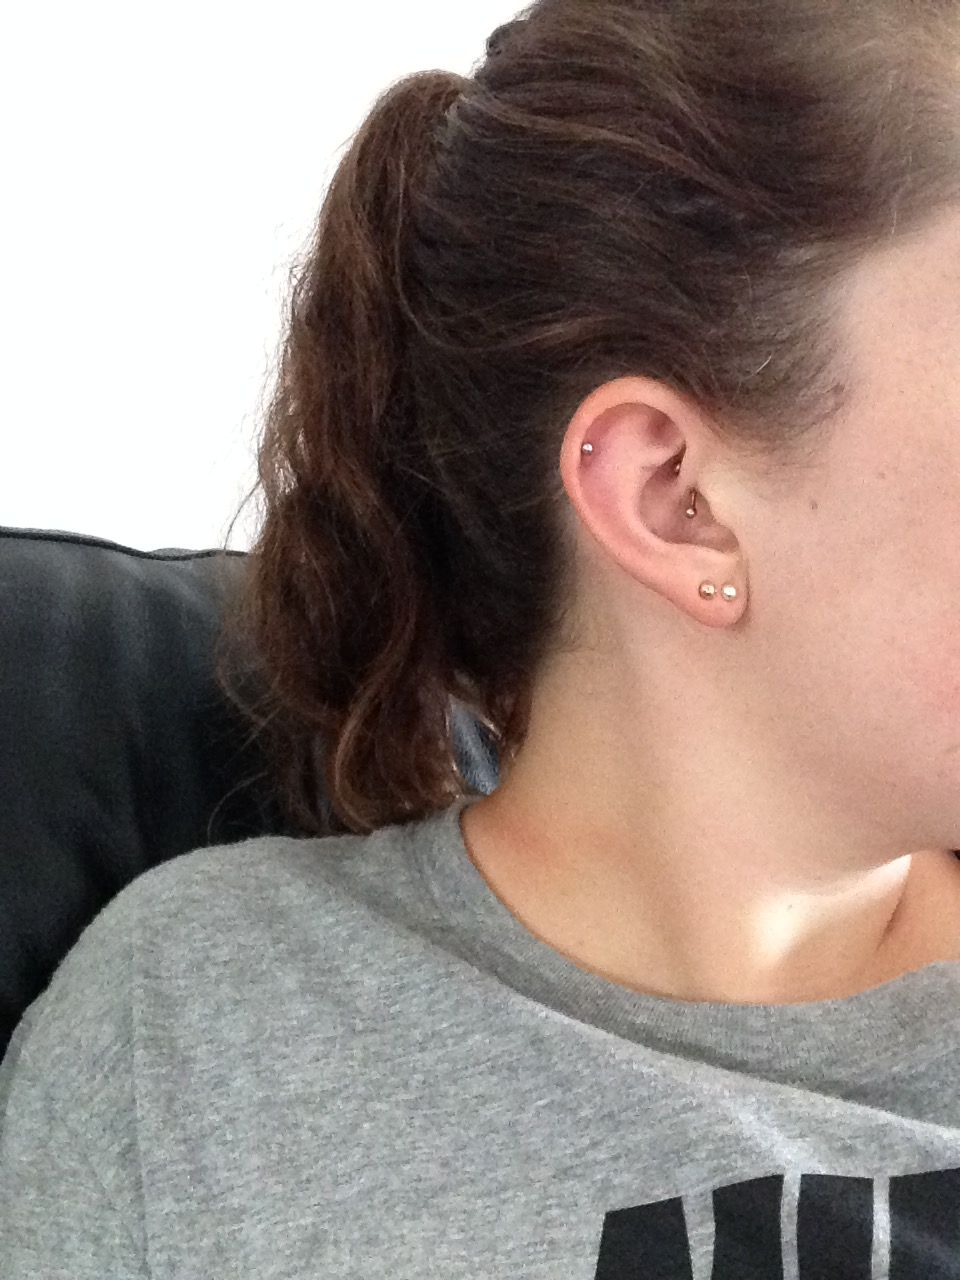 Piercing from nose to ear  Daith and helix piercing  Piercings and tattoos  Pinterest